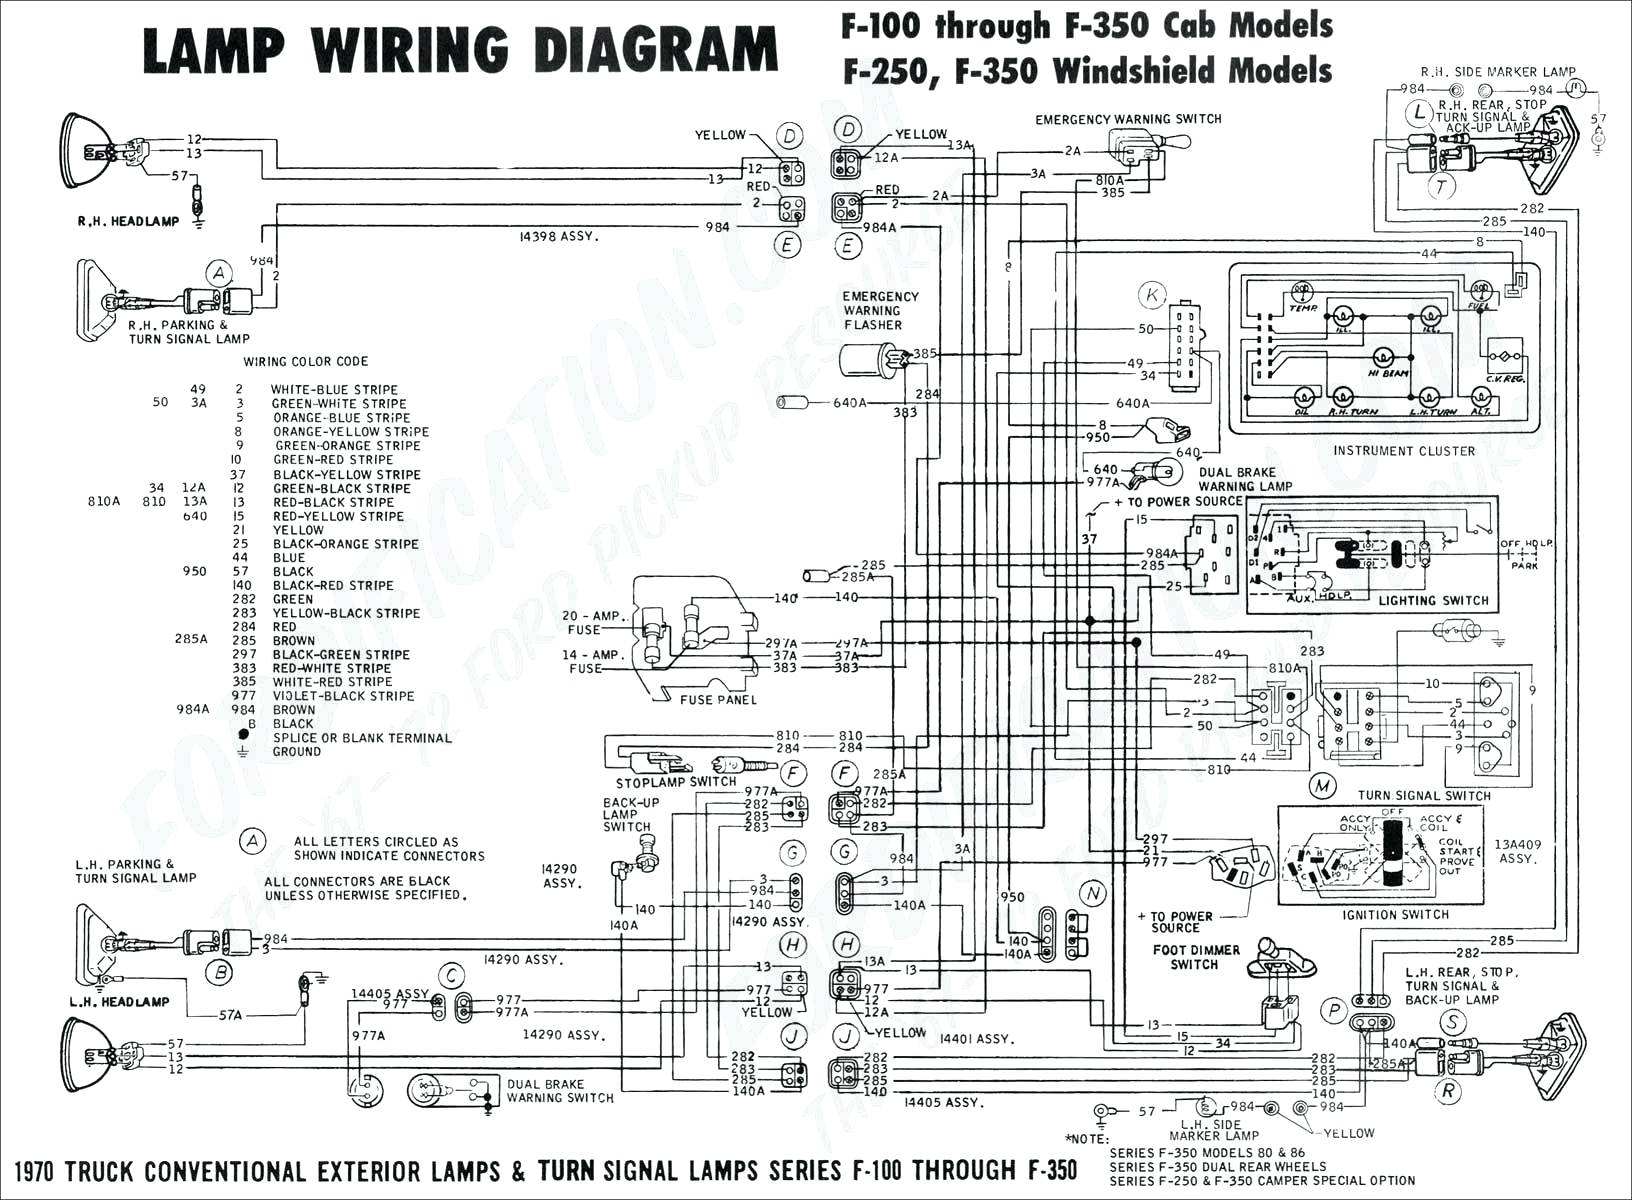 roadmaster wiring diode diagram Collection-tow wiring kit for 2000 f250 library of wiring diagram u2022 rh diagramproduct today Tow Hitch Wiring Kit Stowmaster Wiring Kits 15-i